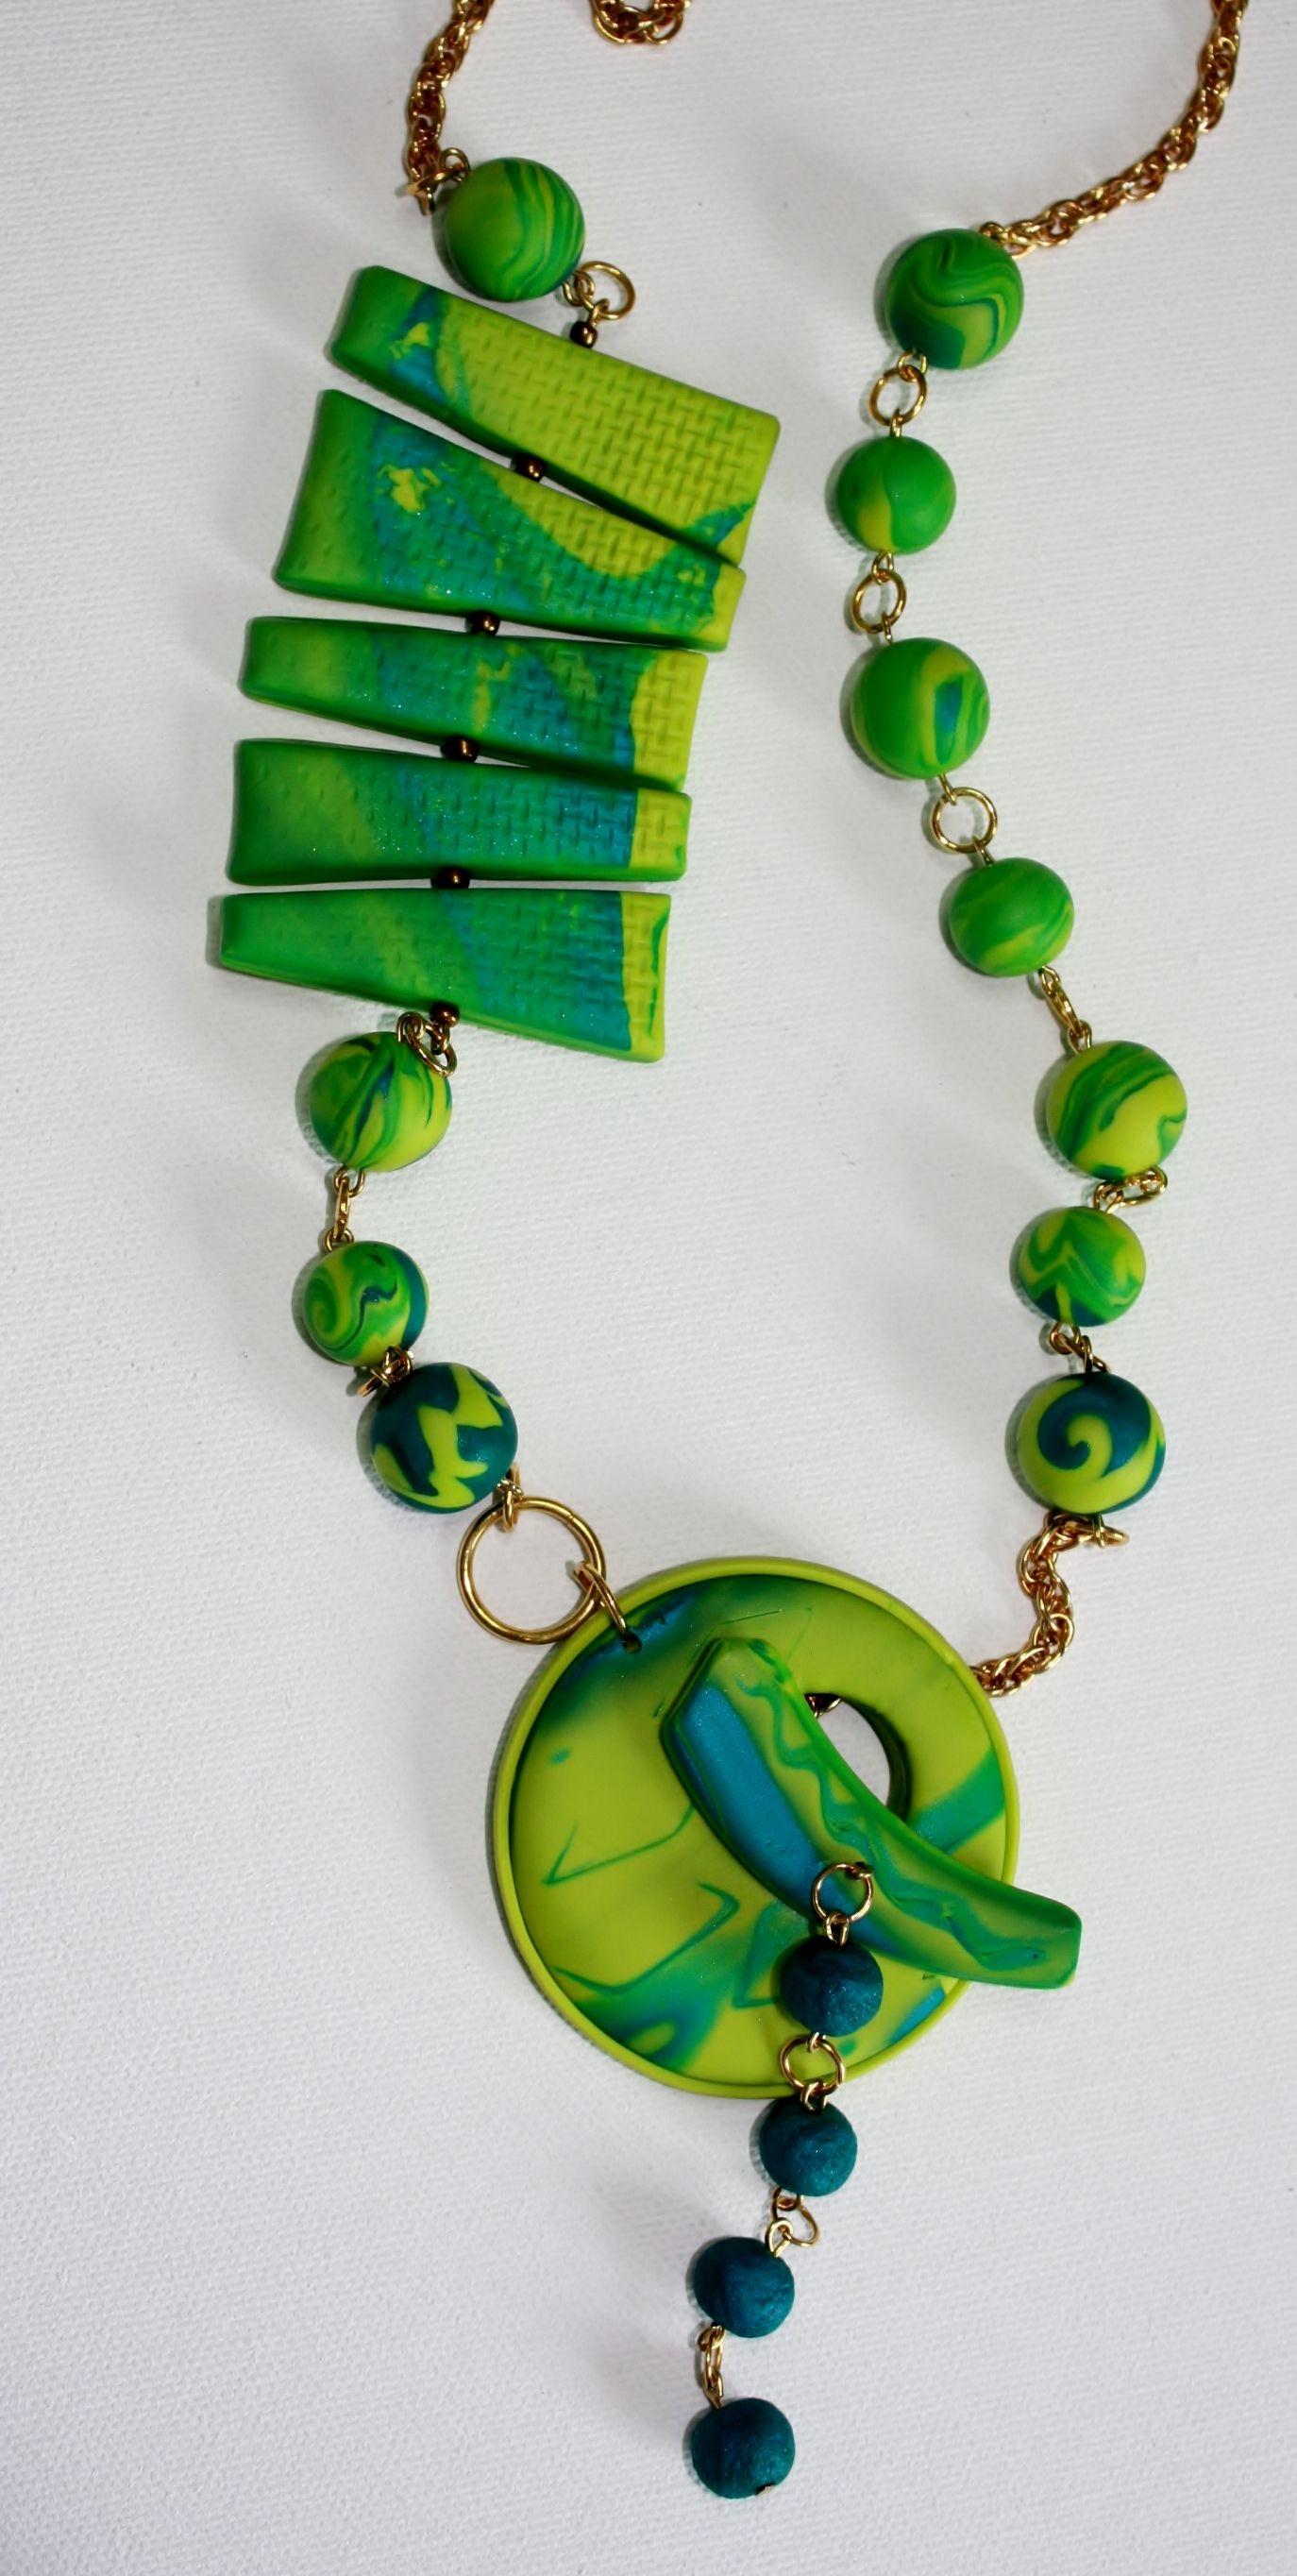 Polymer Clay Beads by Lyn Tremblay - Great fresh colour combo in this lariat-style necklace. Mokume Gane pendant toggle and bar beads balance well with each other.